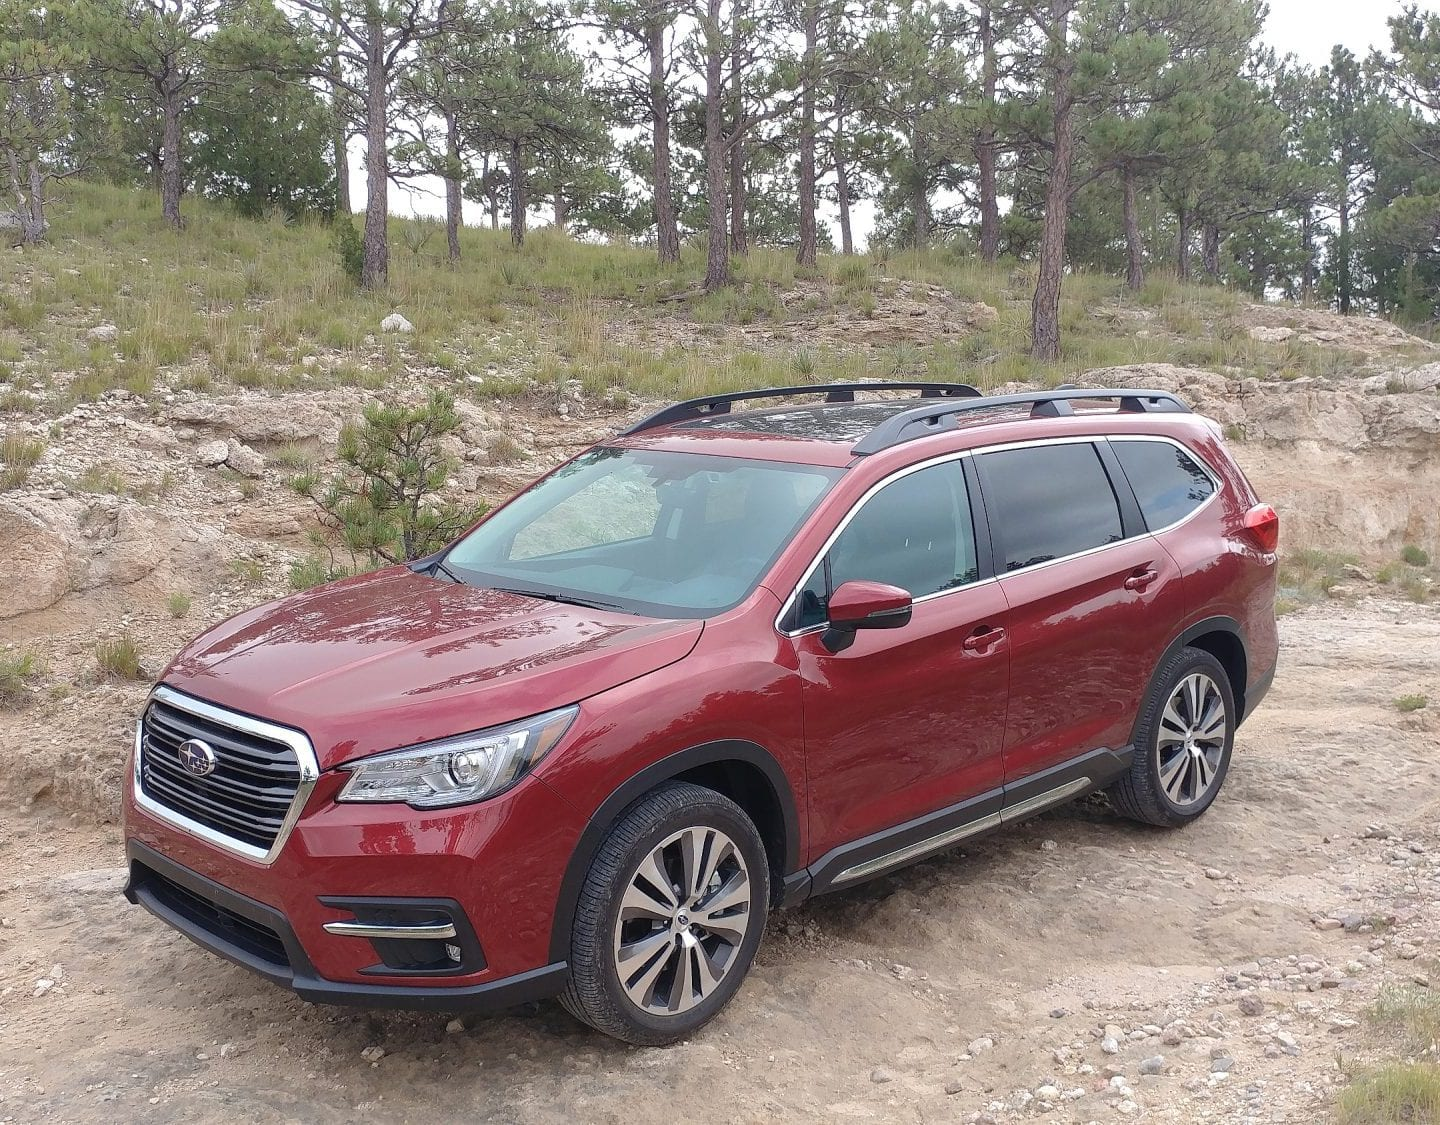 2019 Subaru Ascent Is a Well-Done Subaru Take On a Family Three-Row Ride